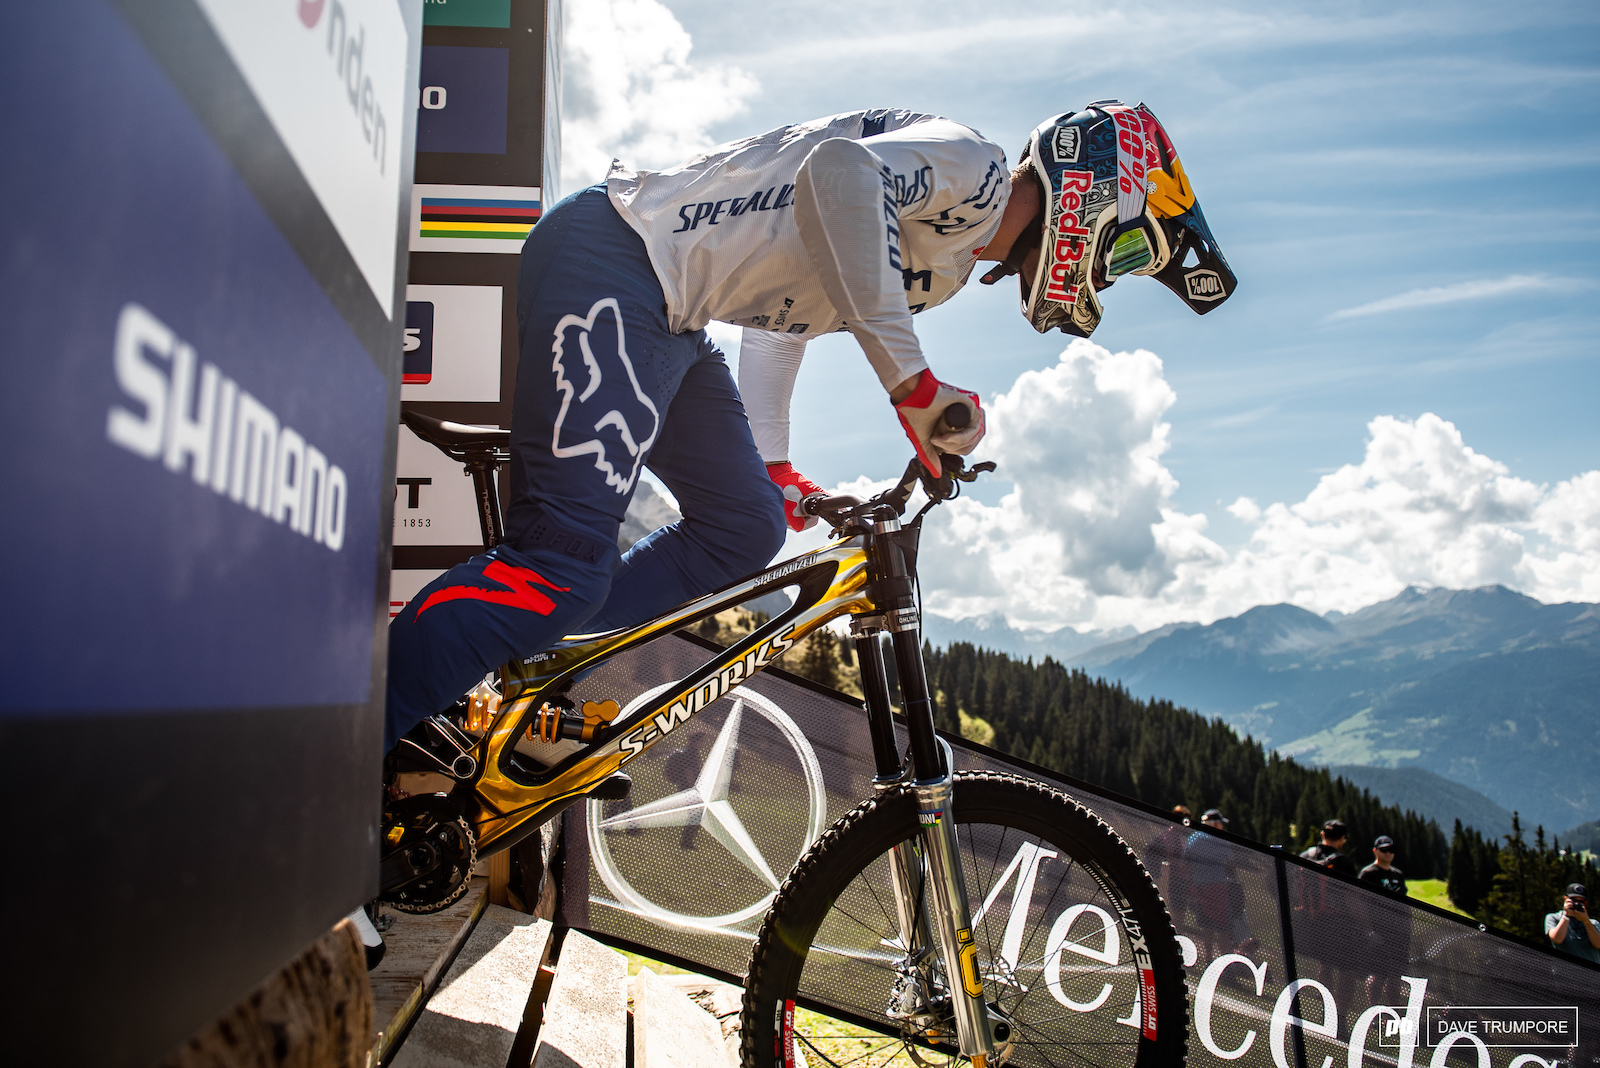 Loic Bruni drops in for the first run in his quest to defend the rainbow jersey.